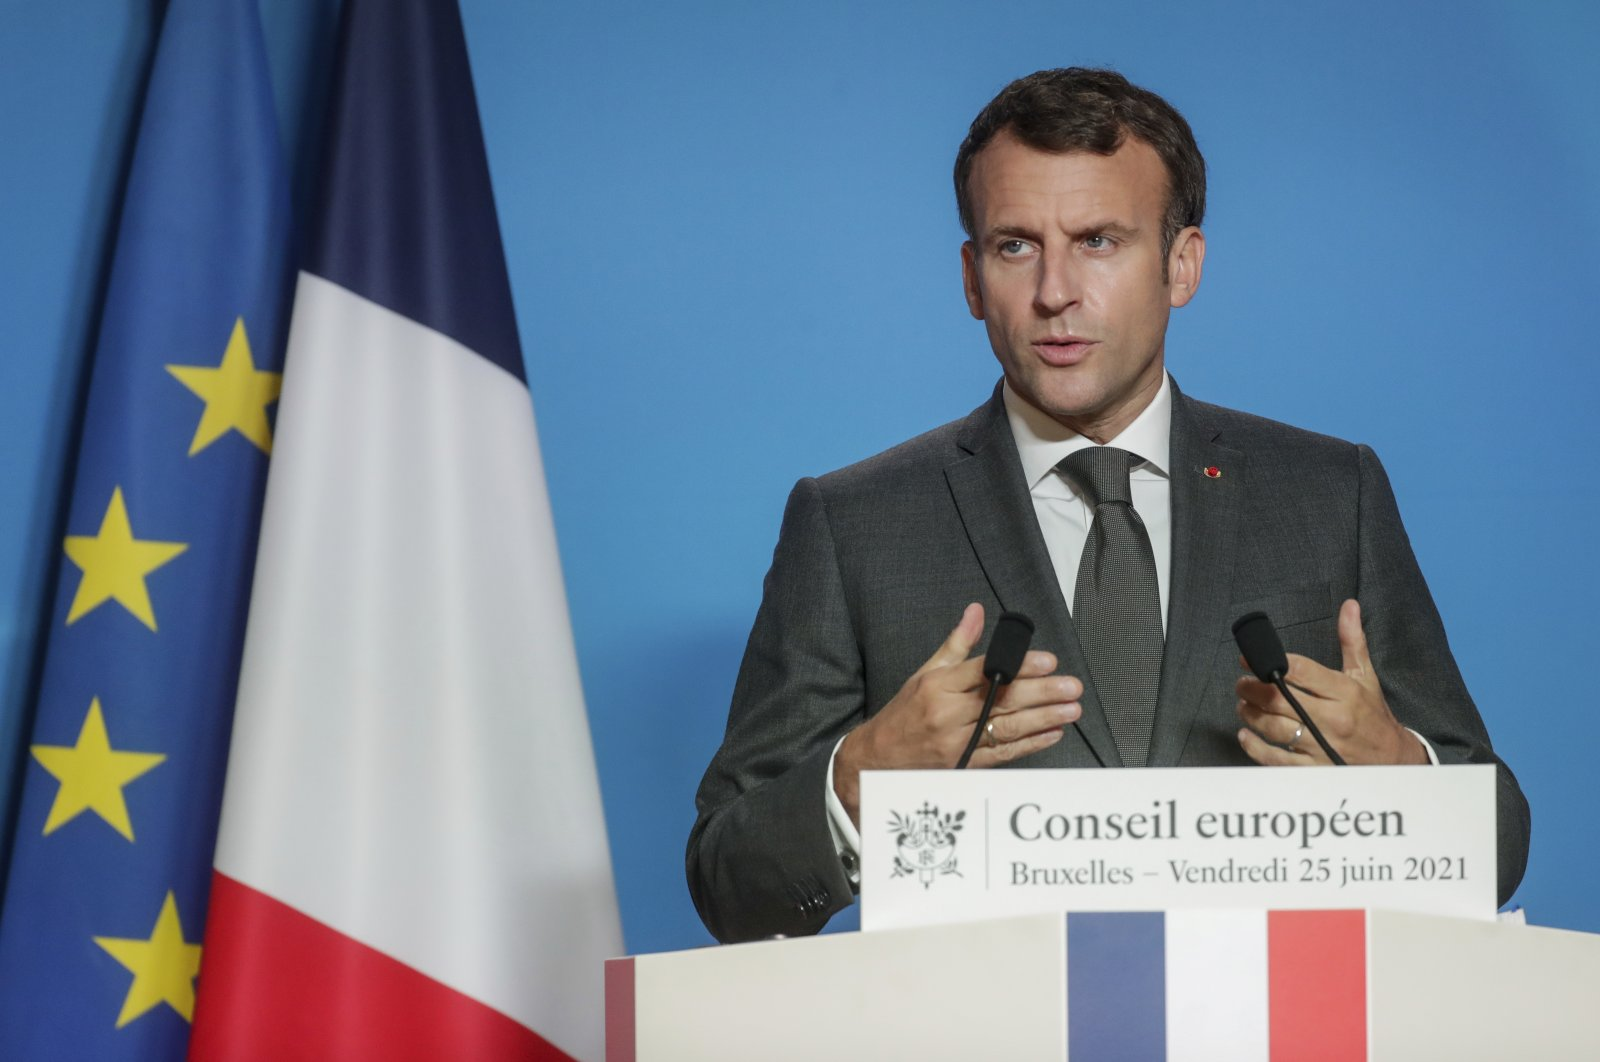 French President Emmanuel Macron talks to journalists during a news conference at the end of an EU summit at the European Council building in Brussels, Friday, June 25, 2021. (AP Photo)